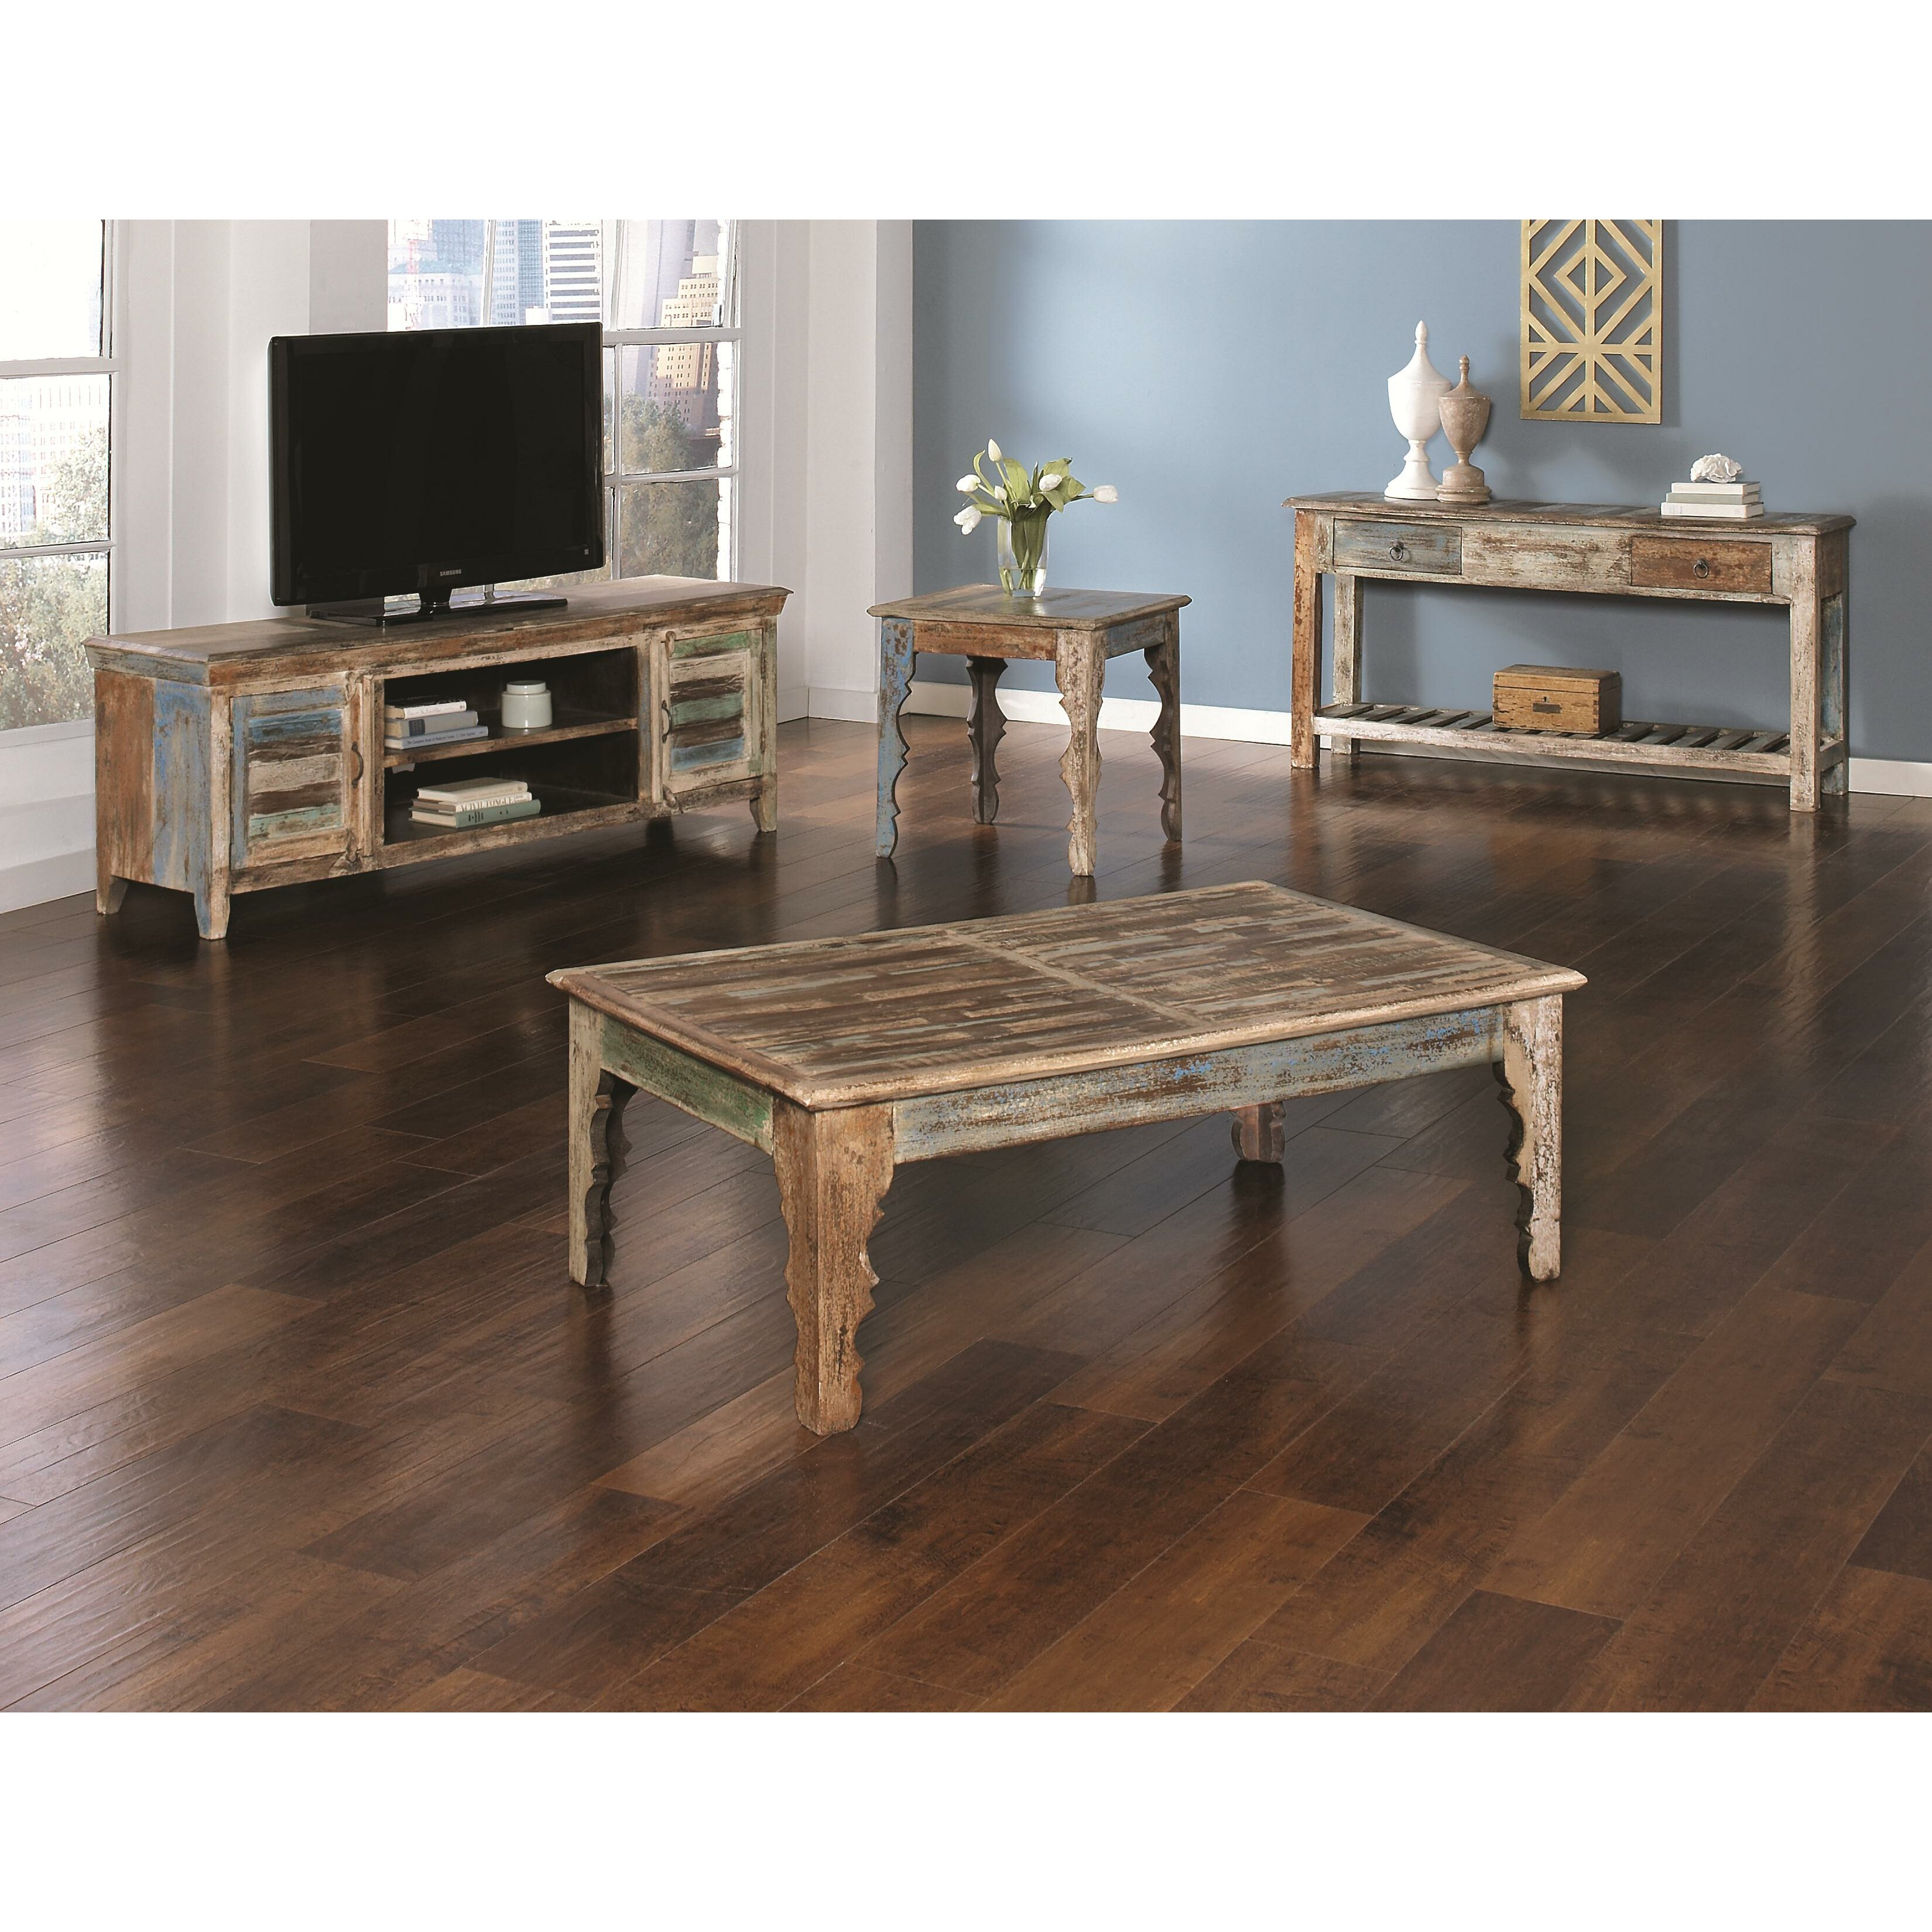 Bungalow Rose Roosa Living Room Collection Reviews: Bungalow Rose Khemisset Coffee Table Set & Reviews